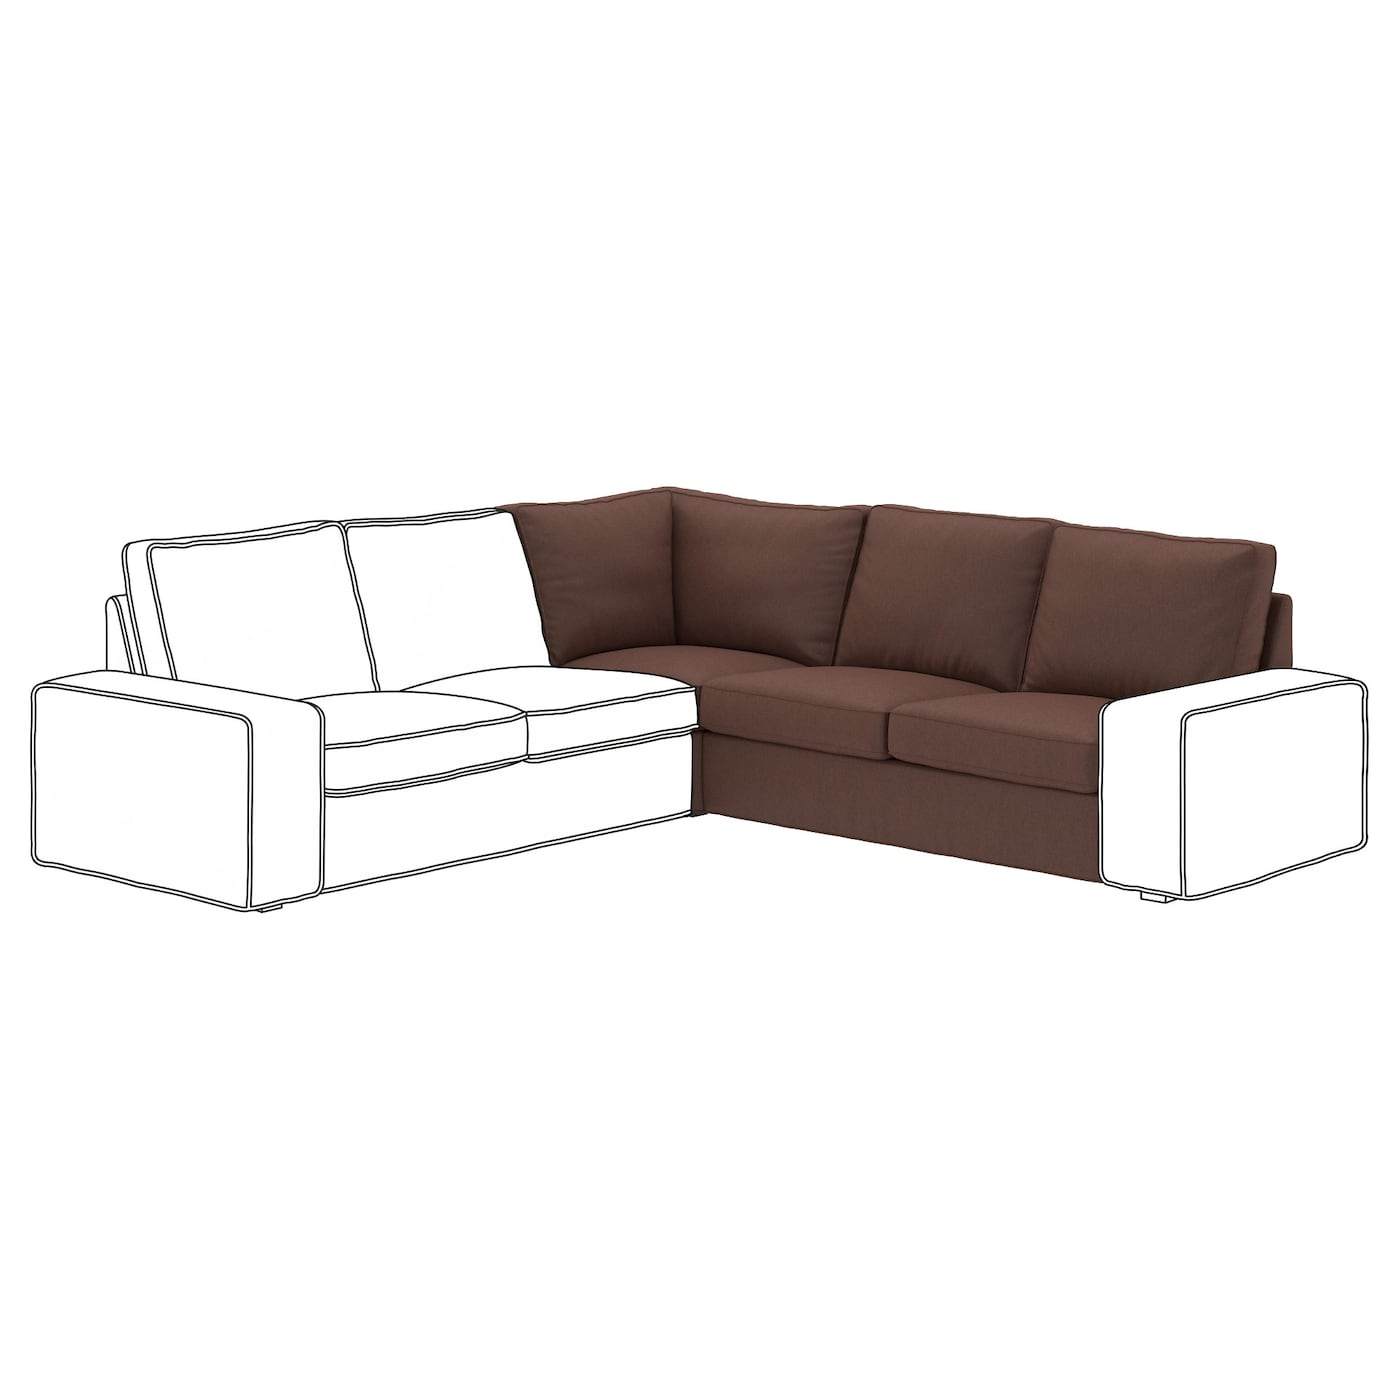 Kivik corner section borred dark brown ikea - Kivik corner section ...